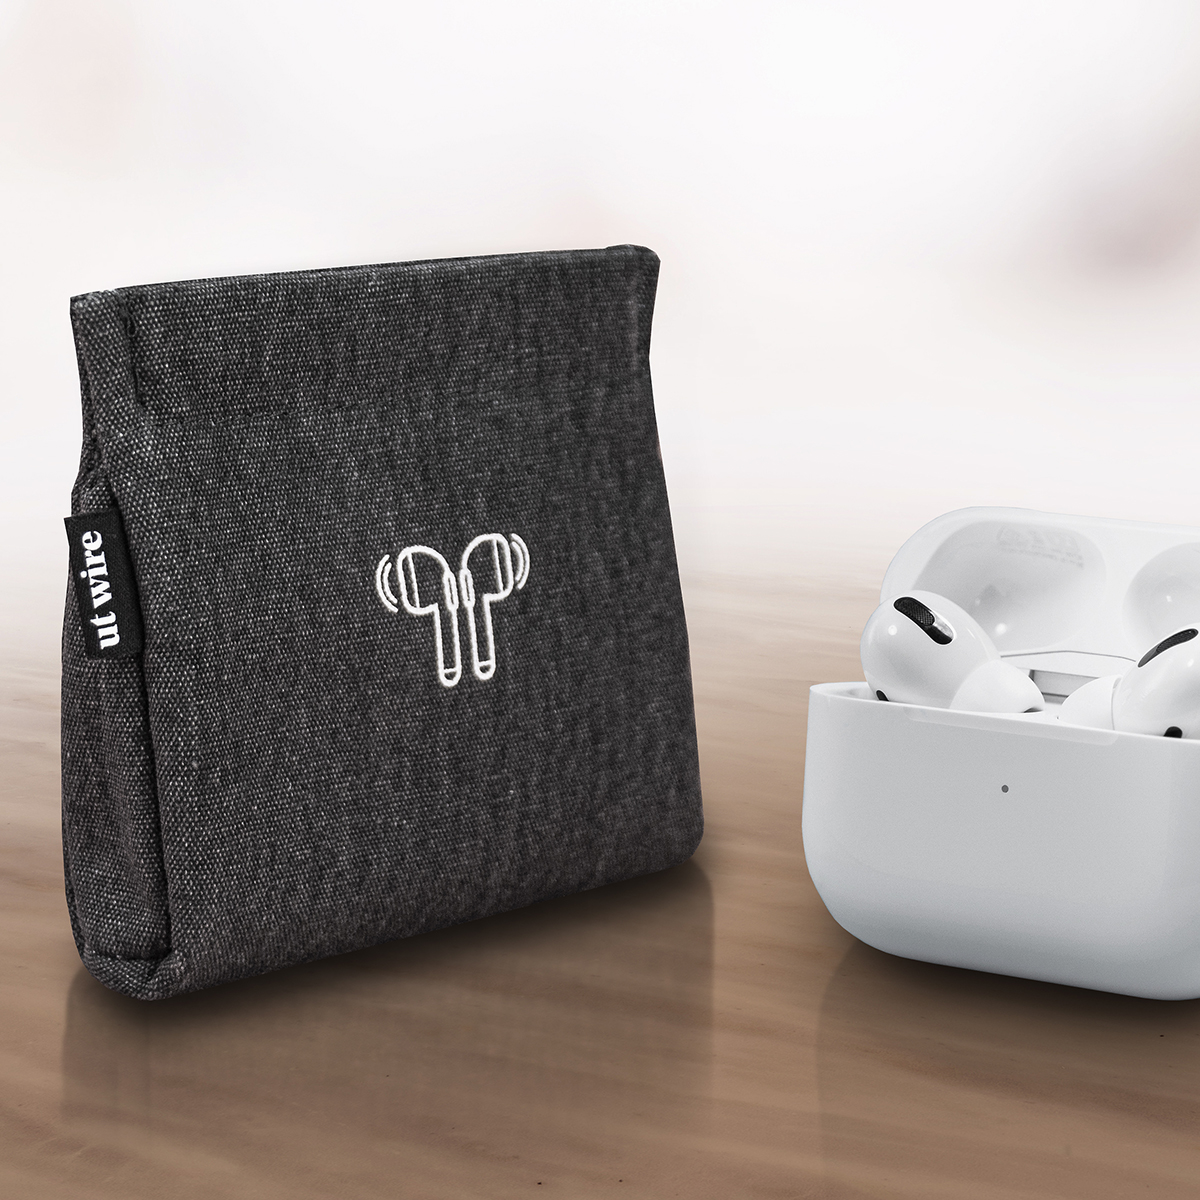 AirPod Charcoal Accessory Pouch